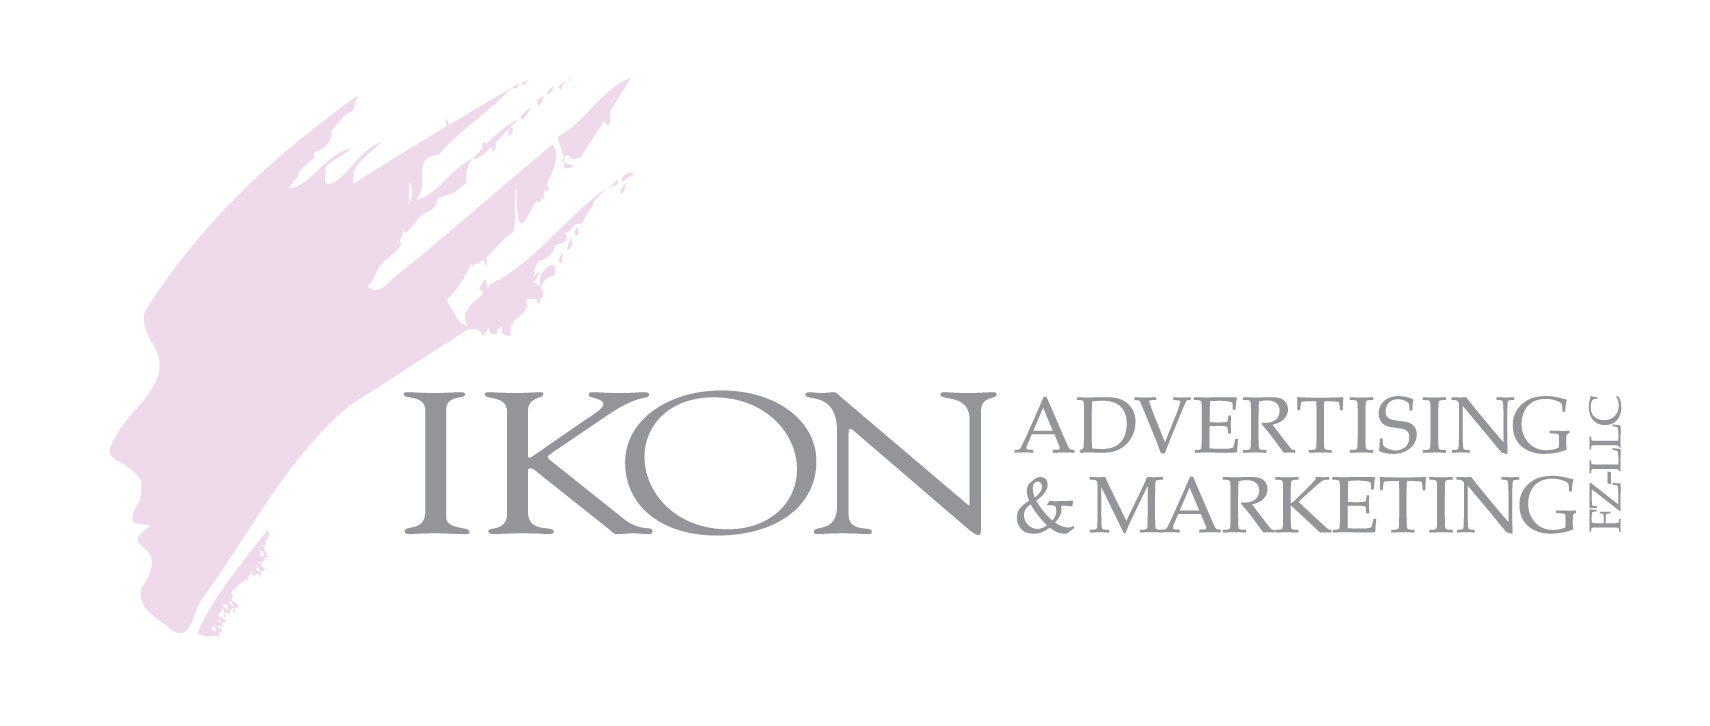 IKON Advertising & Marketing Services